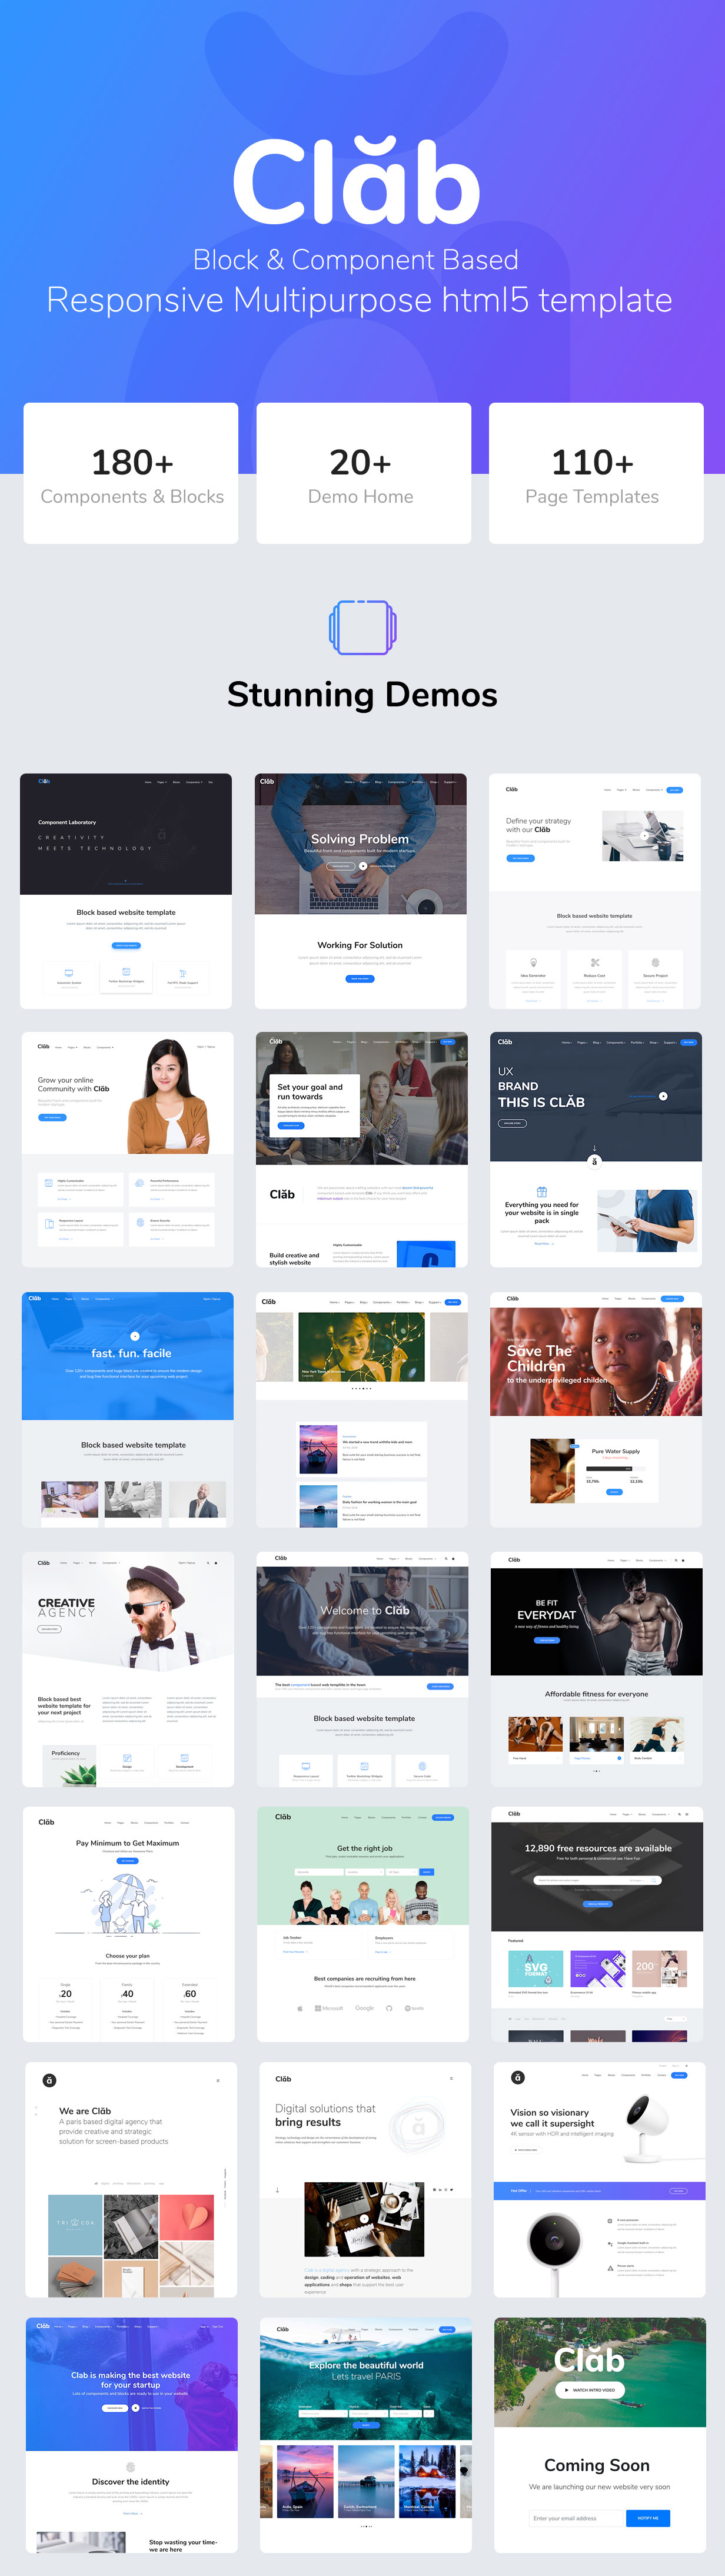 Clab - Multi-Purpose HTML5 Template - 1